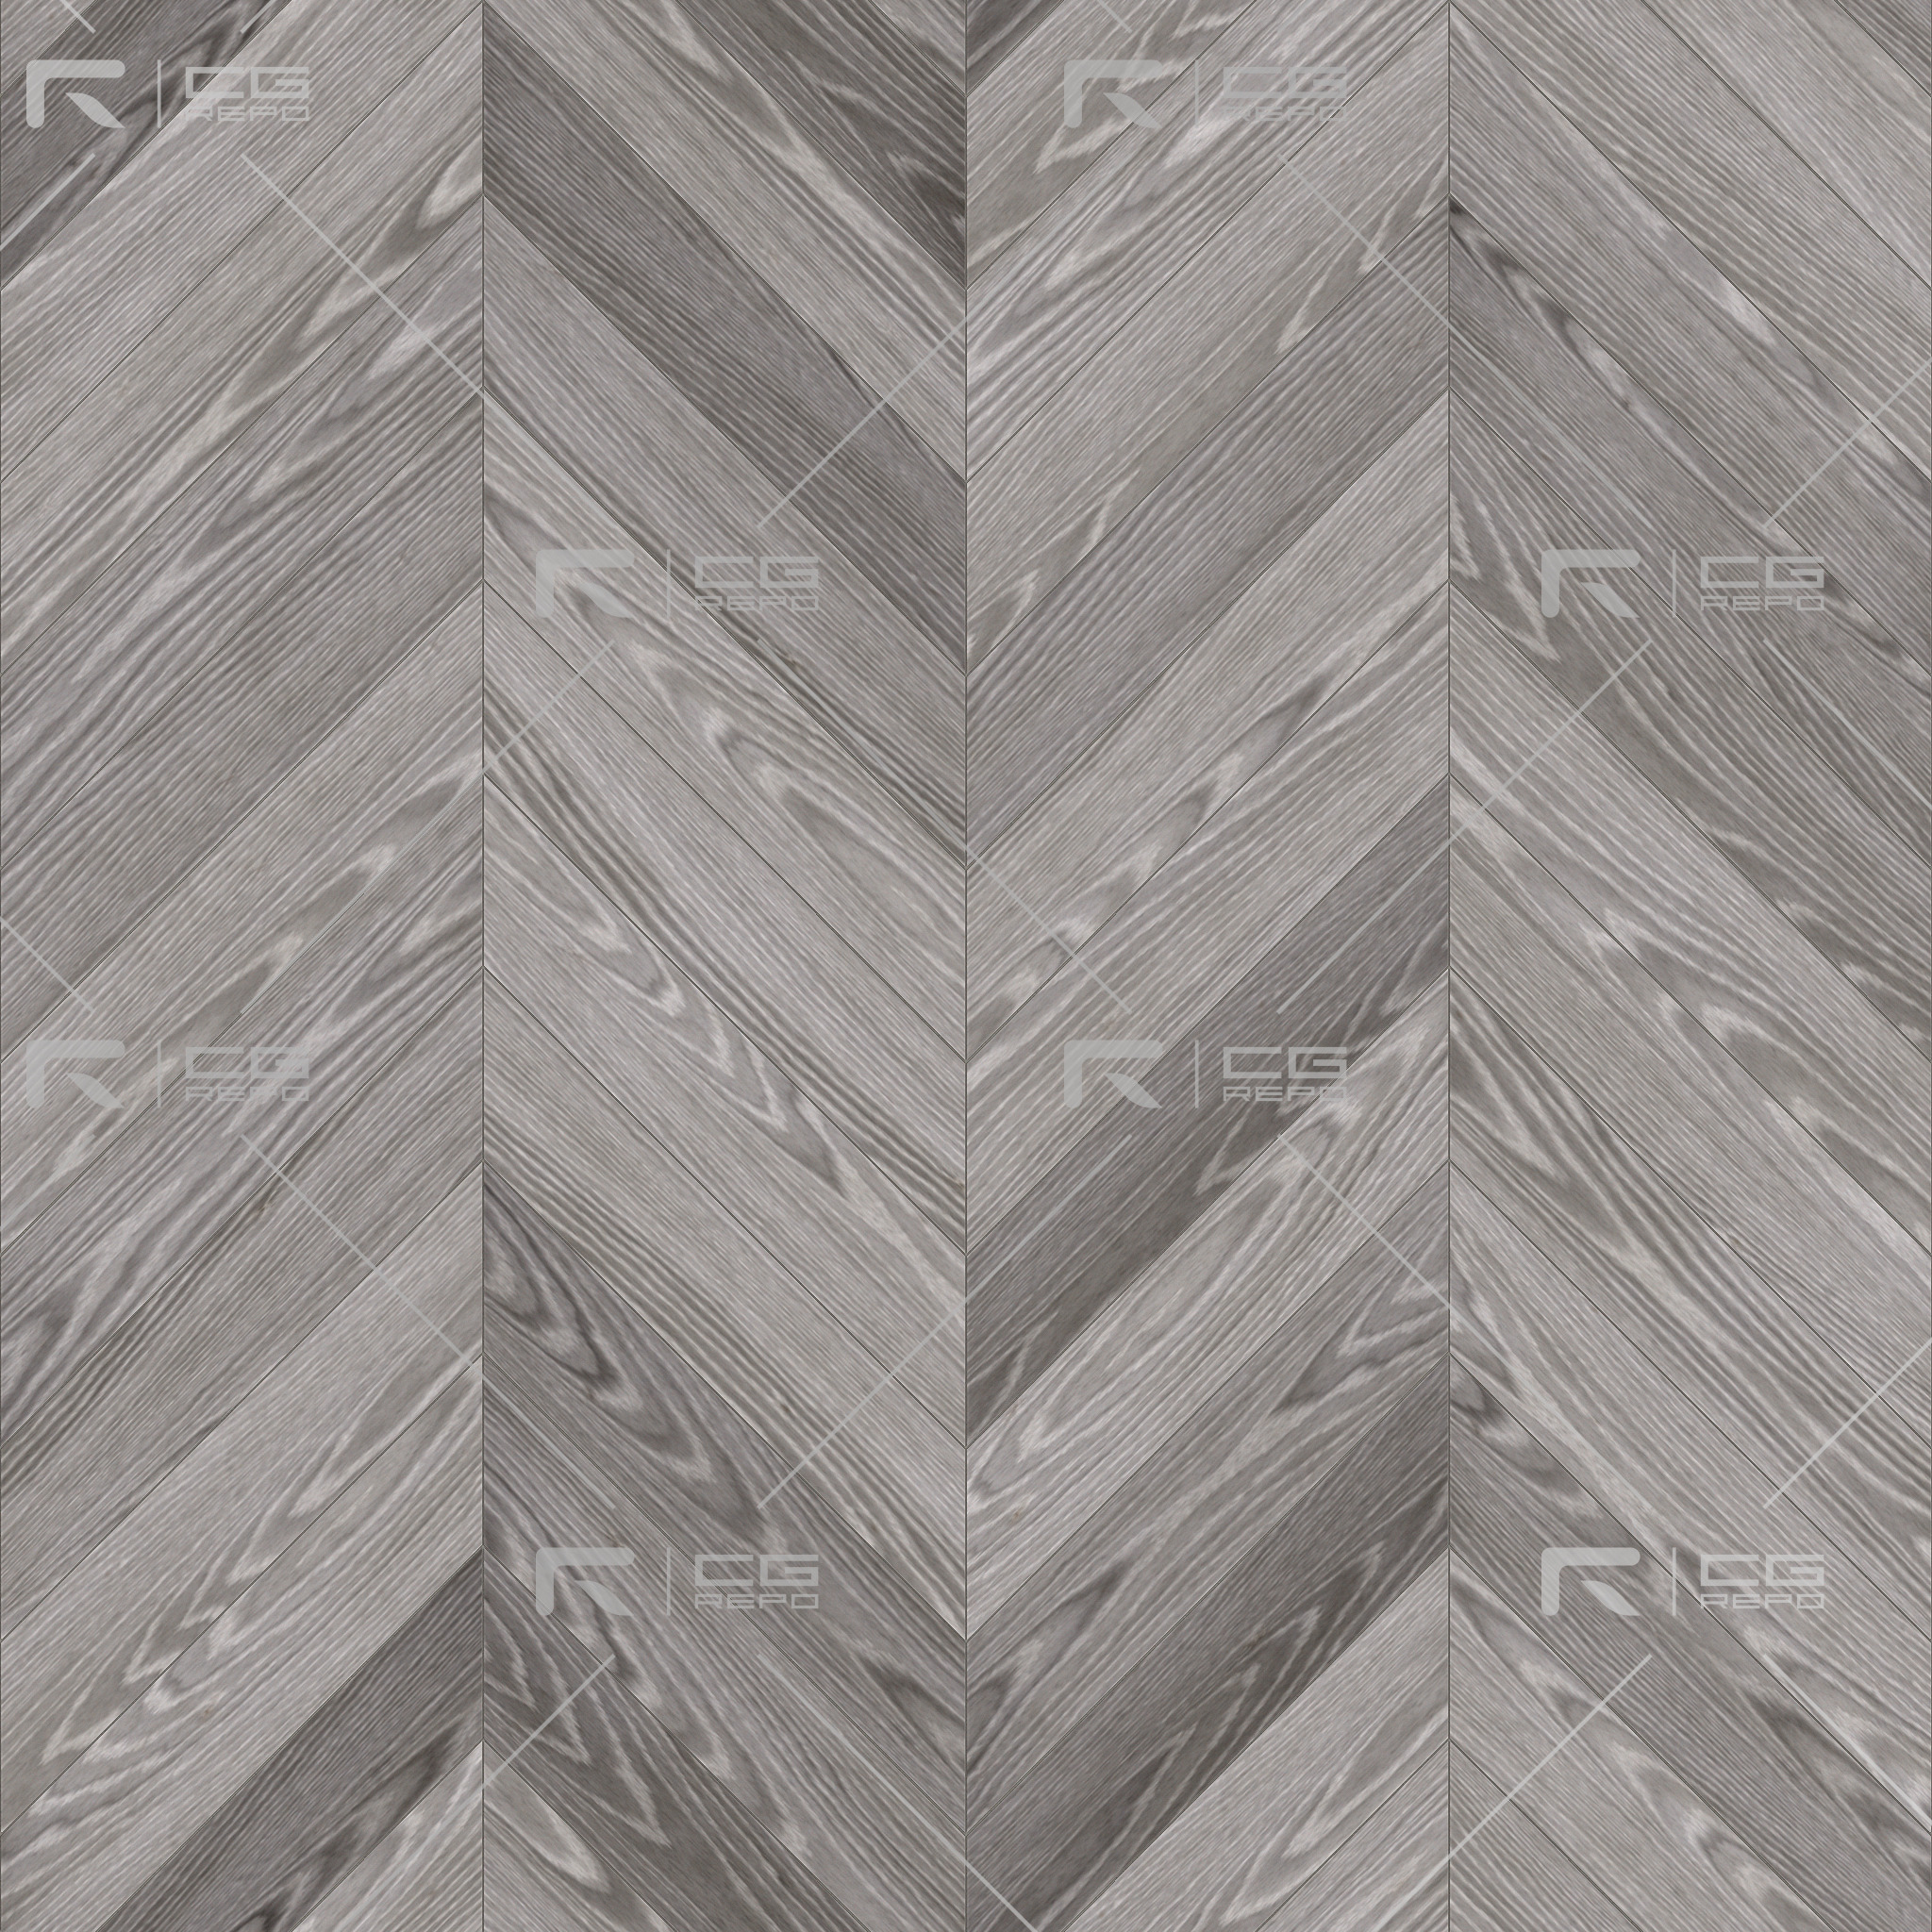 Oak European Light Ash Chevron BaseColor Texture